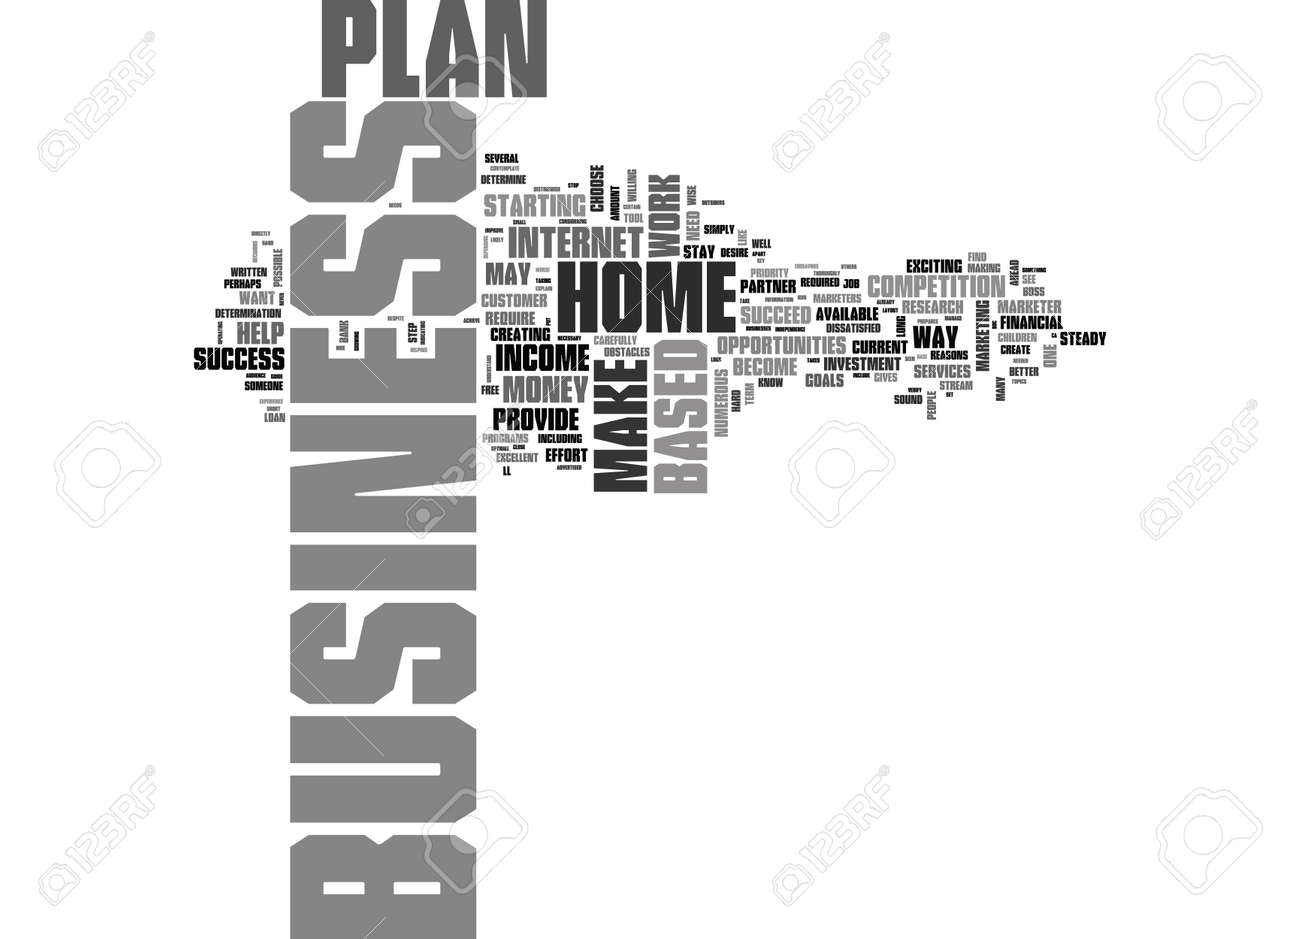 You Can Make Money With A Home Based Business Your Business Plan